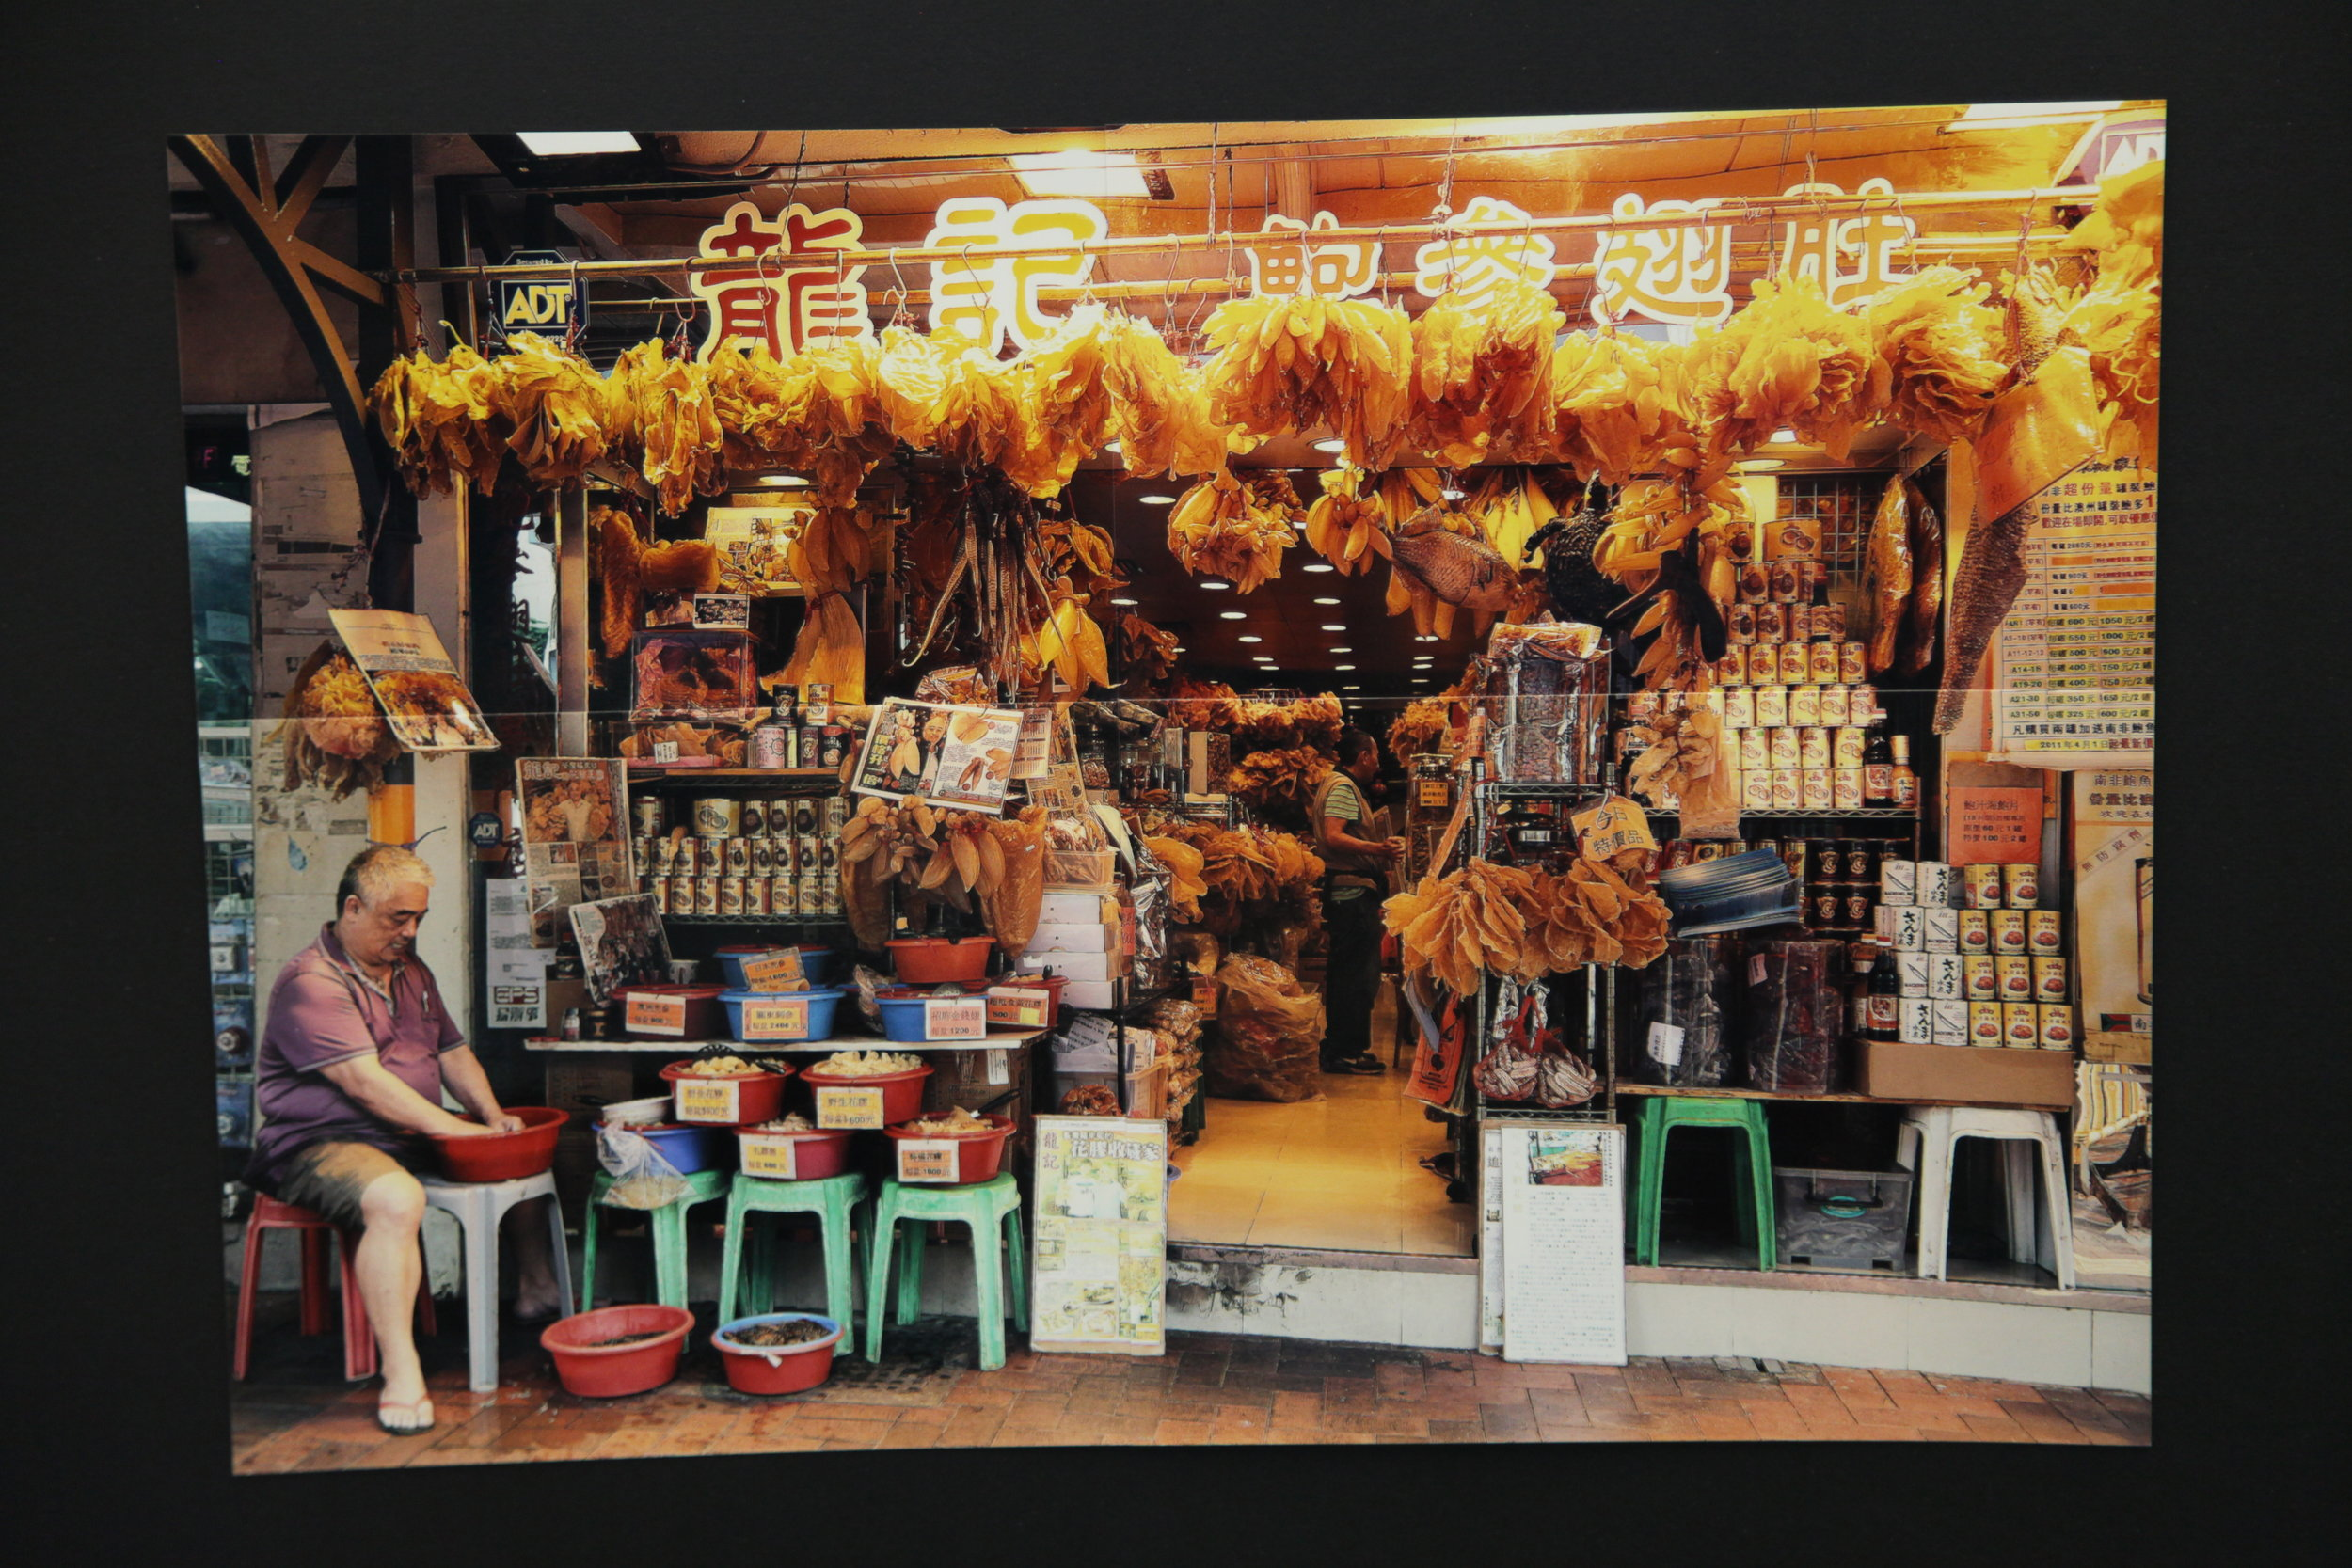 葉家偉 Alexis Ip '老店系列:龍記海味 (荃灣) Lung Kee Dried Seafood (Tsuen Wan)' (Hong Kong, 2019) Courtesy of Blue Lotus Gallery.JPG